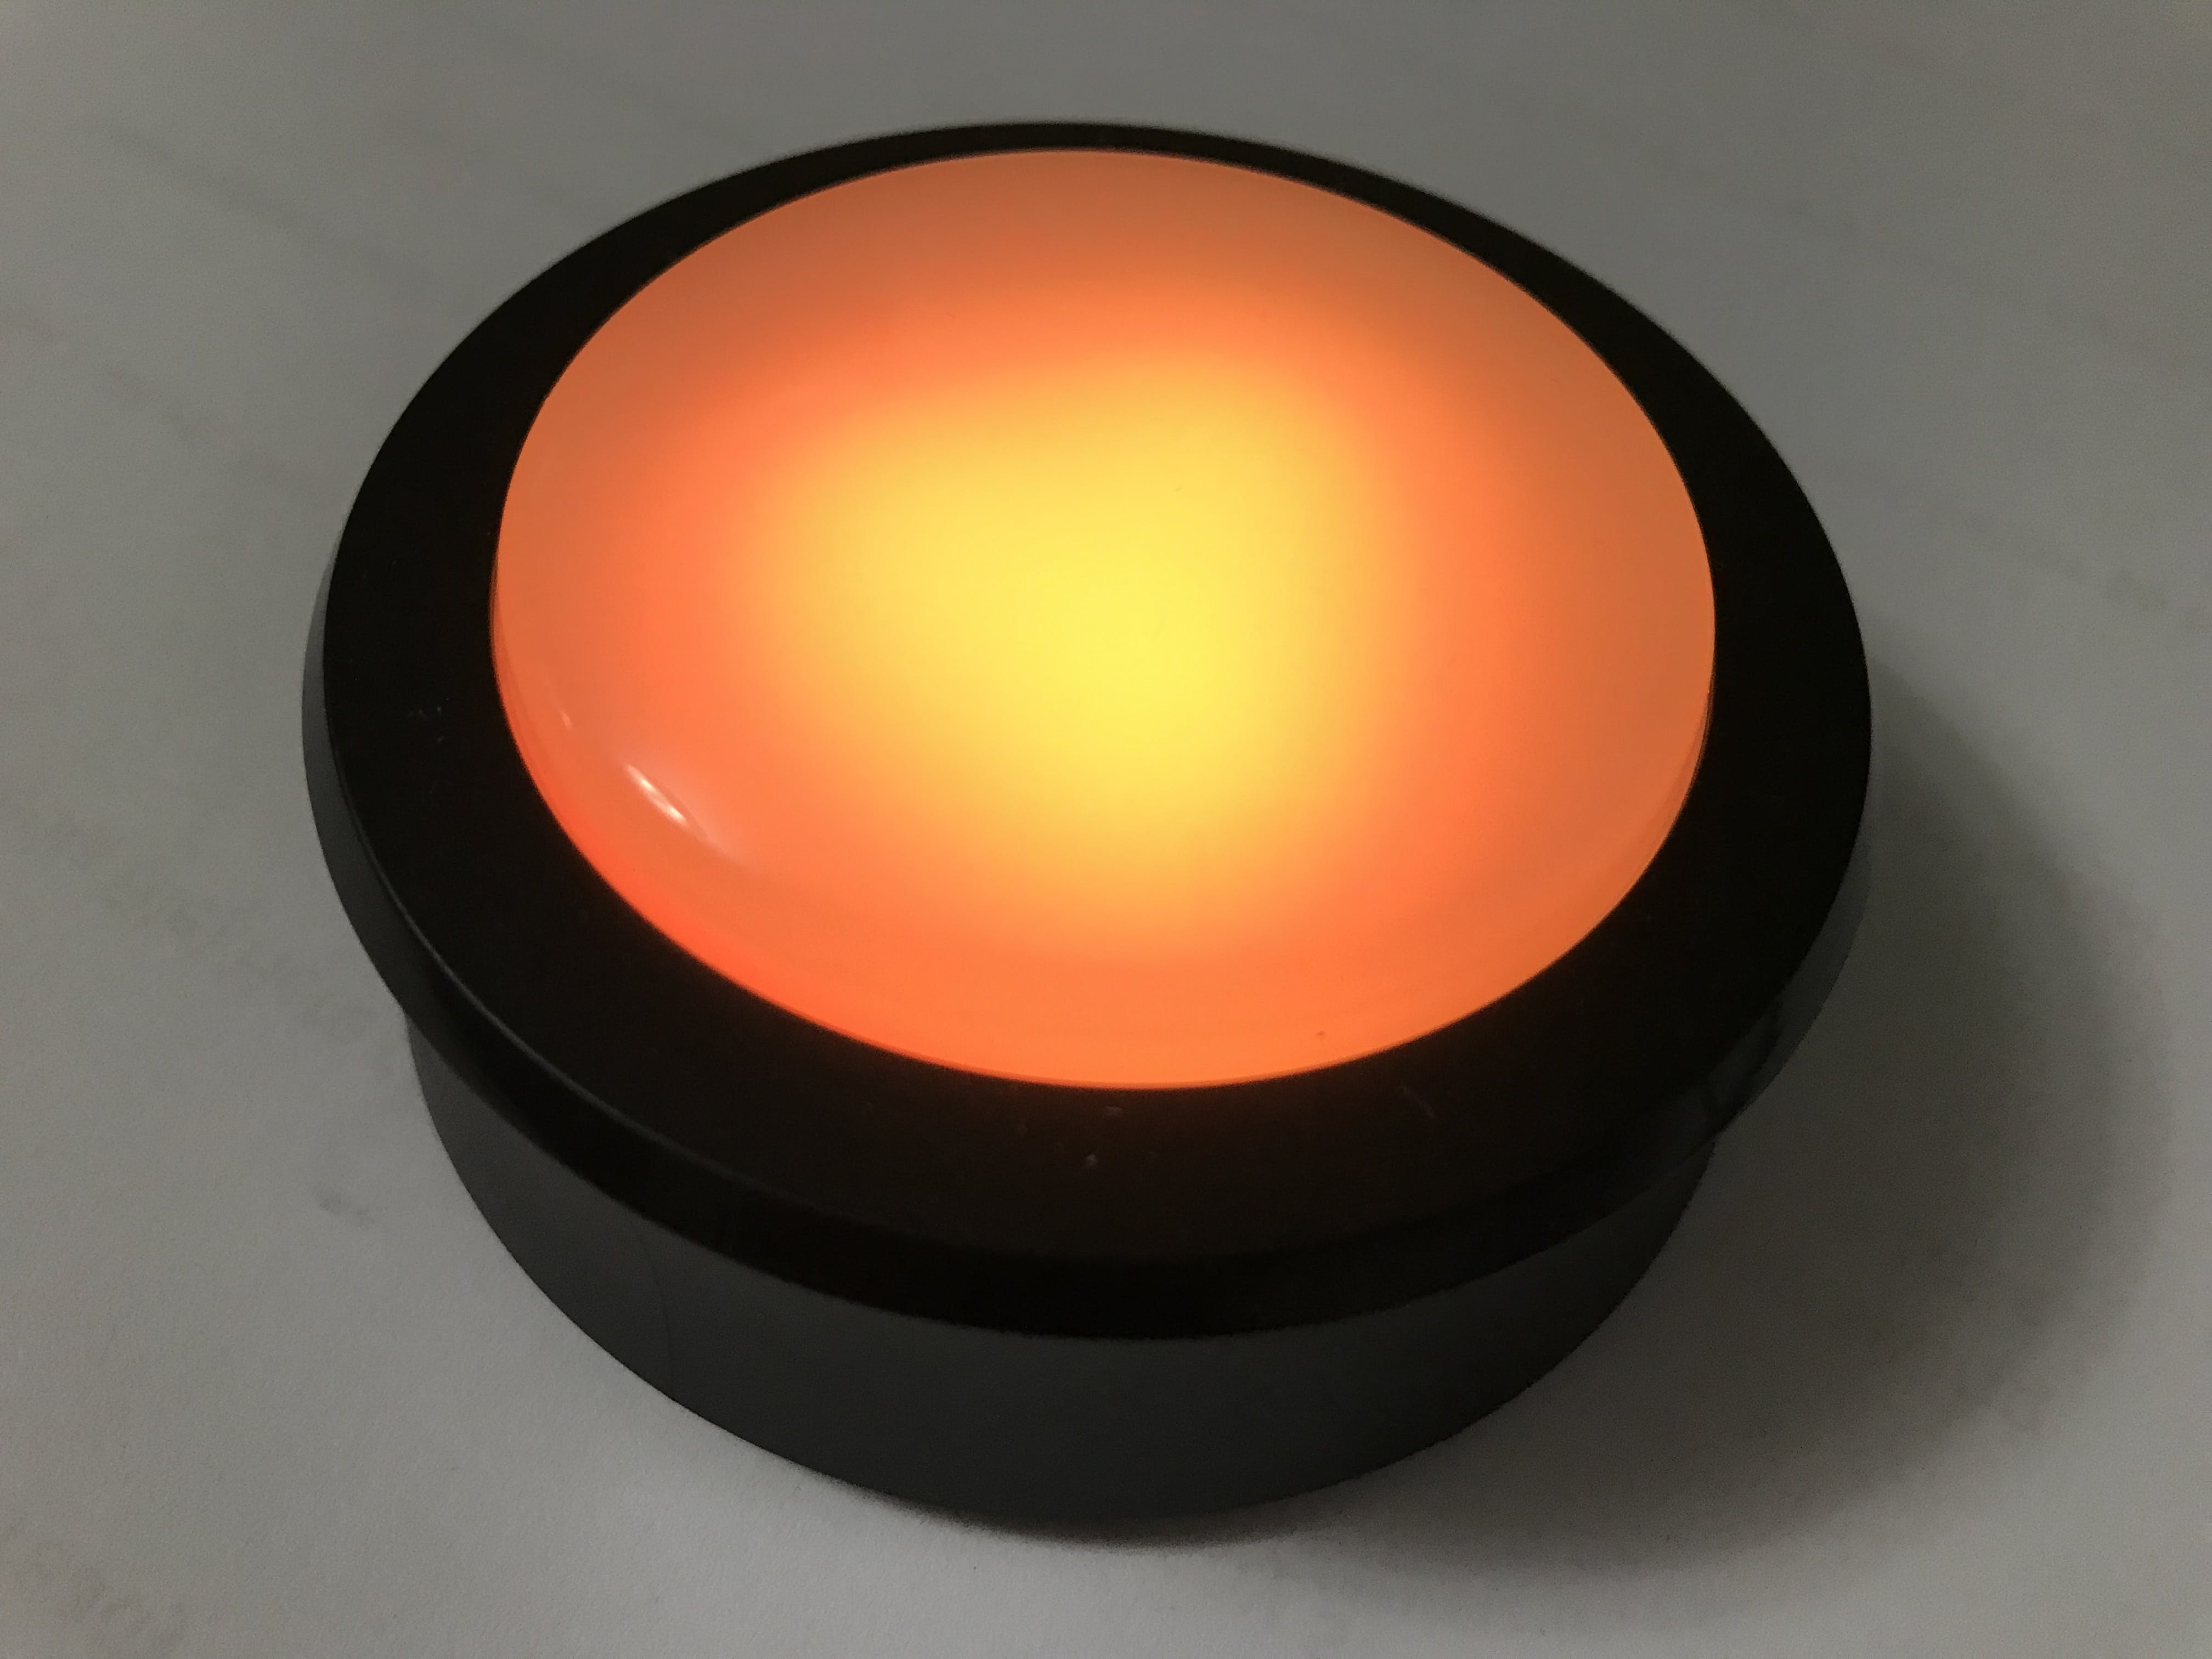 Echo Button with lights activated